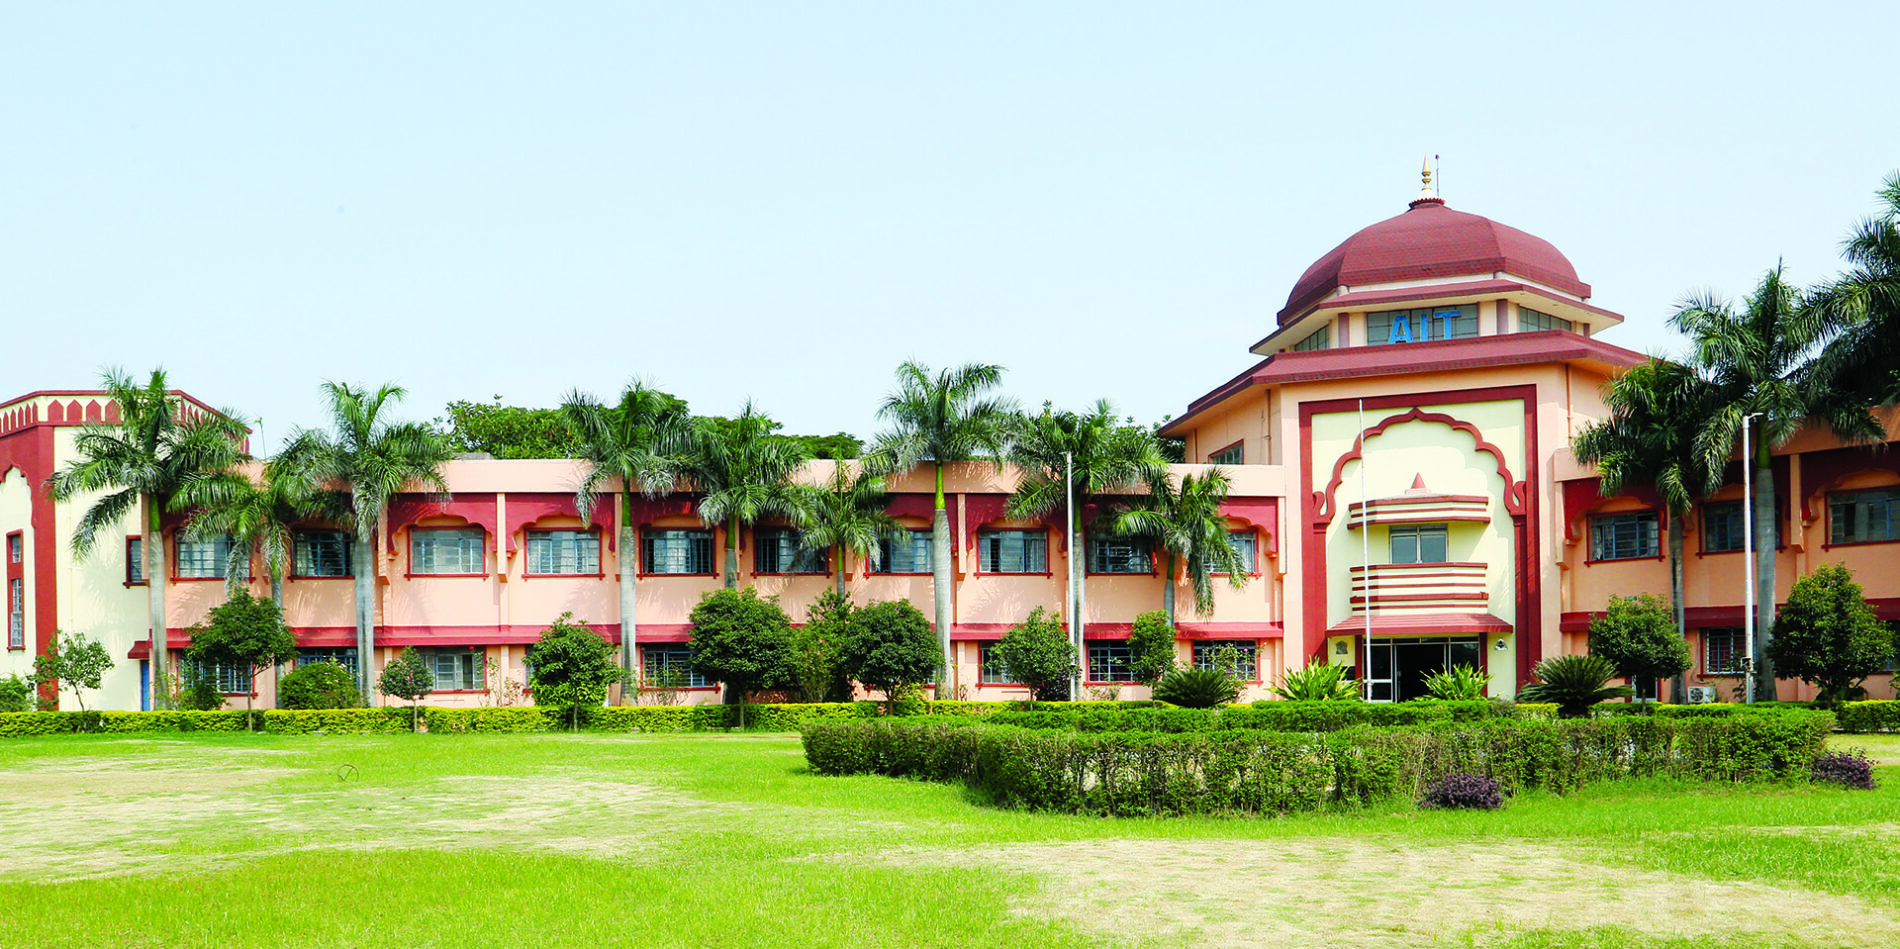 Army Institute of Technology